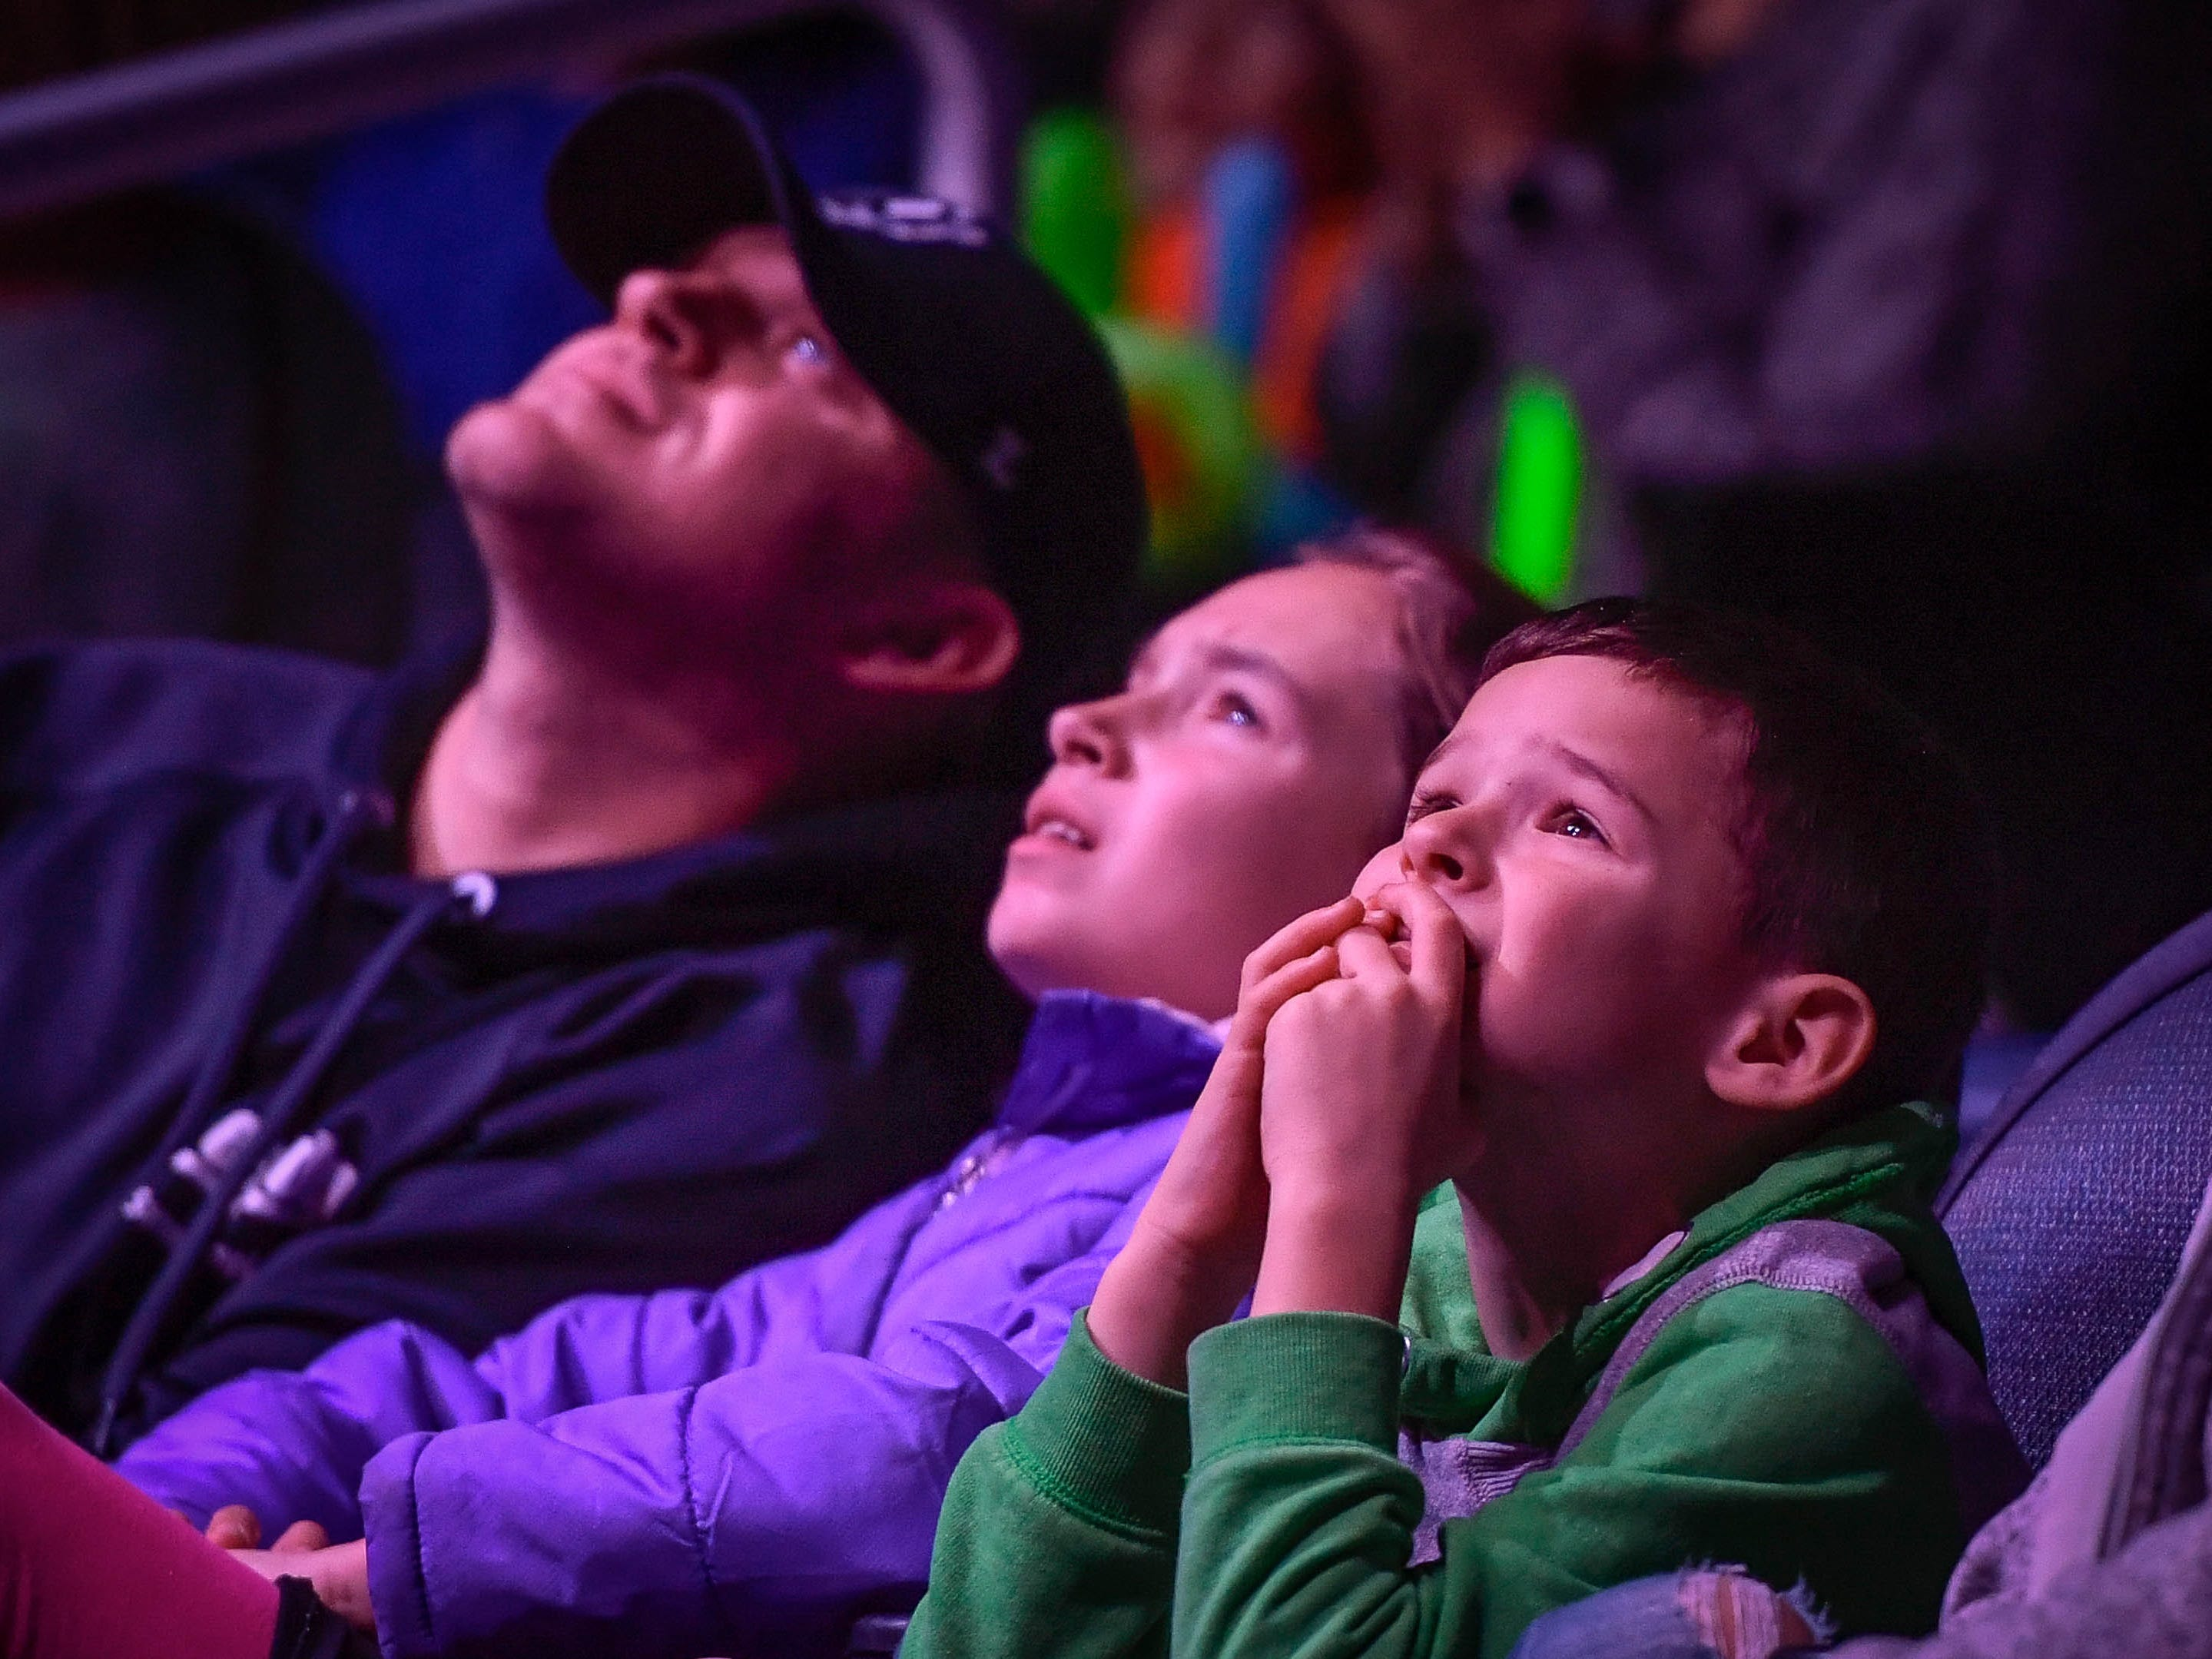 Brayden Eskew, right, seven years-old, can't stand the suspense as he watches a aerial act with his father Derek and sister Breah Eskew, 11 years-old, during the 85th annual Hadi Shrine Circus at the Evansville Ford Center Friday, November 23, 2018.